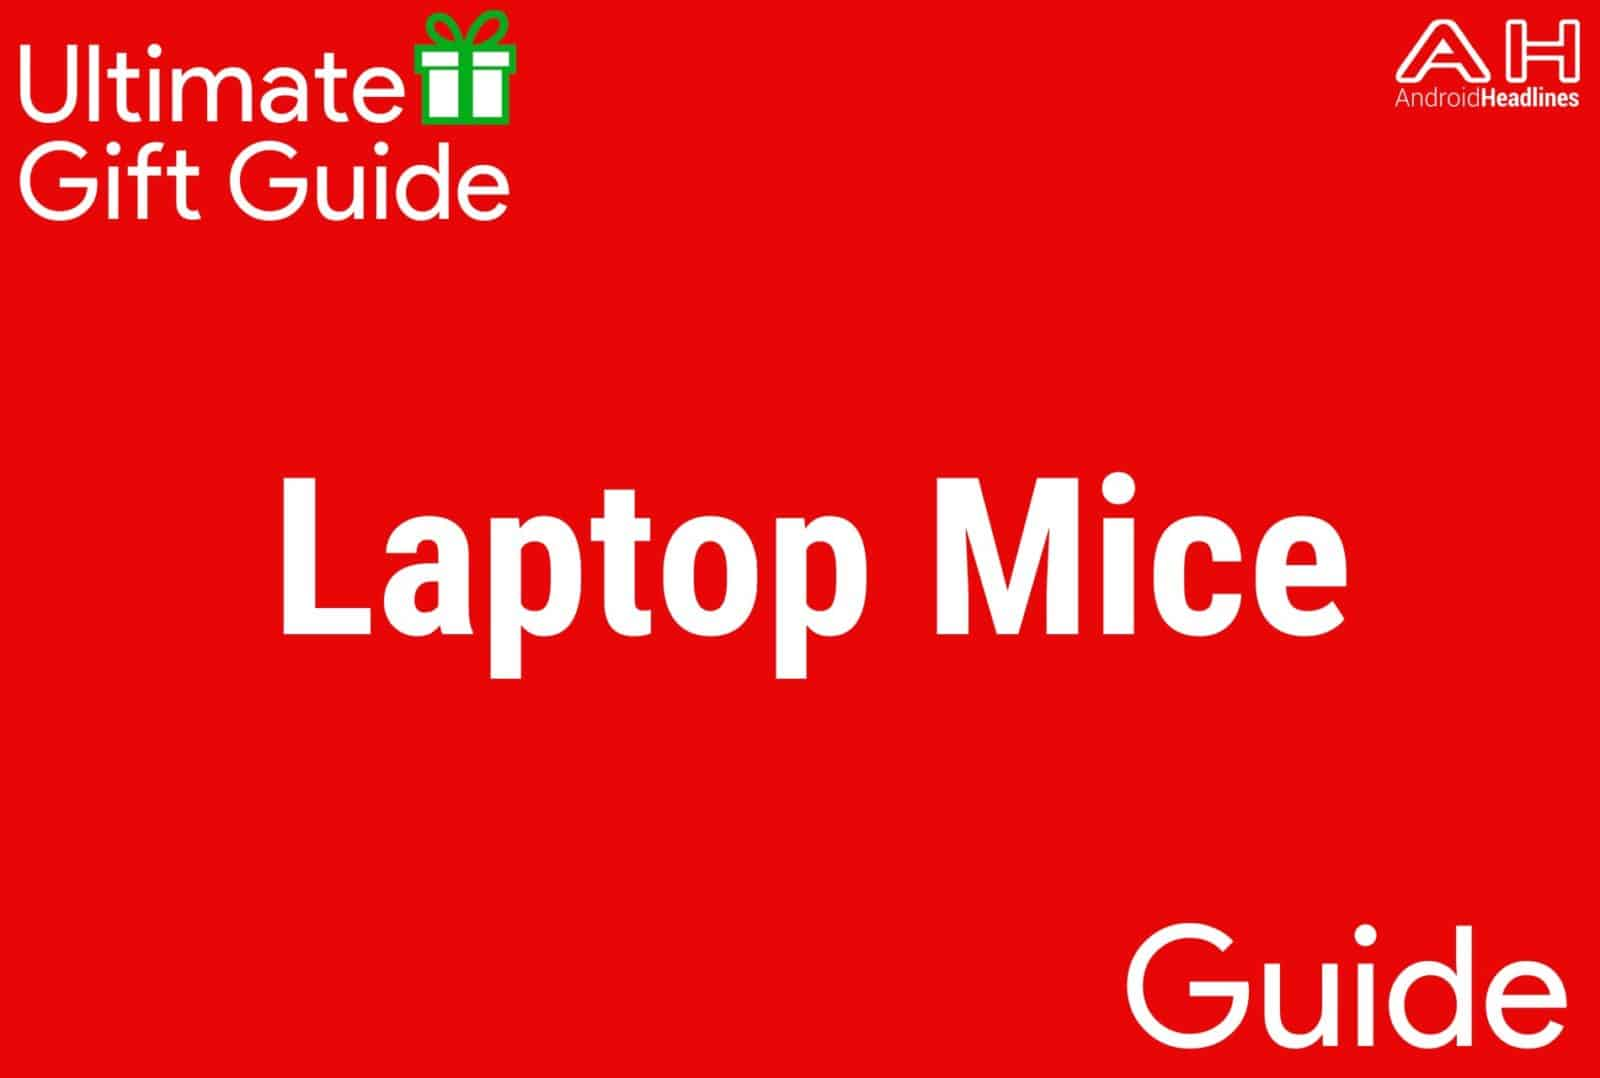 Laptop Mice - Gift Guide 2015